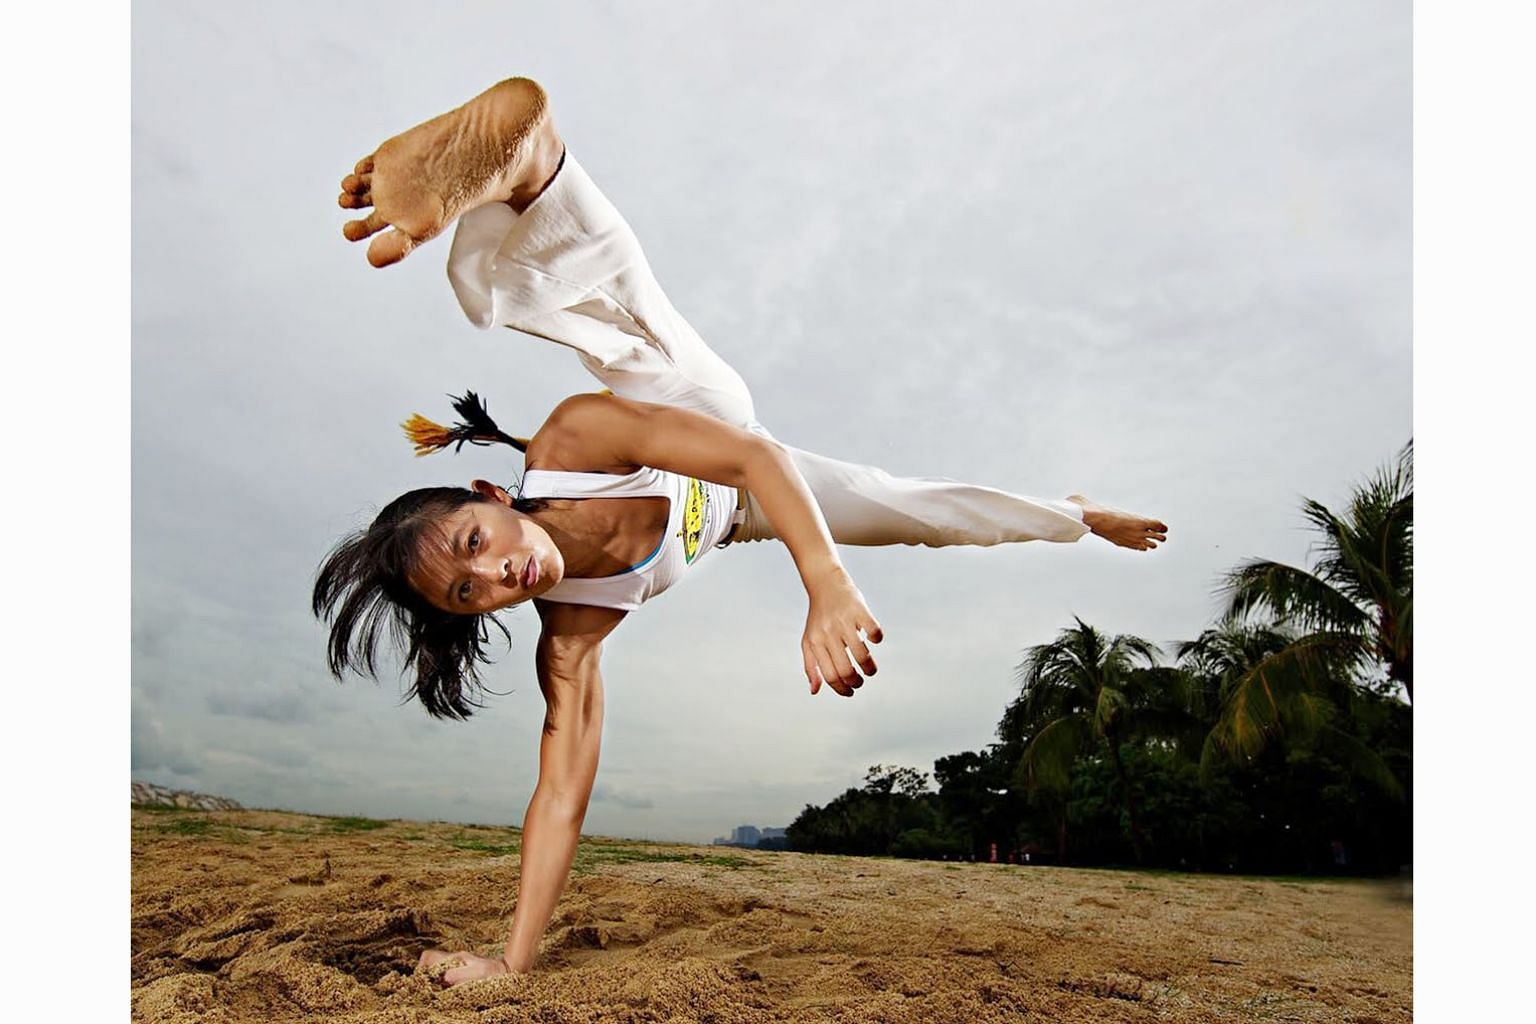 Former national swimmer May Ooi had set herself two targets when she got a contract with One Championship in mid-2017 - to compete in the mixed martial arts organisation's events and to represent Singapore in jiu-jitsu at the Asian Games. She achieve